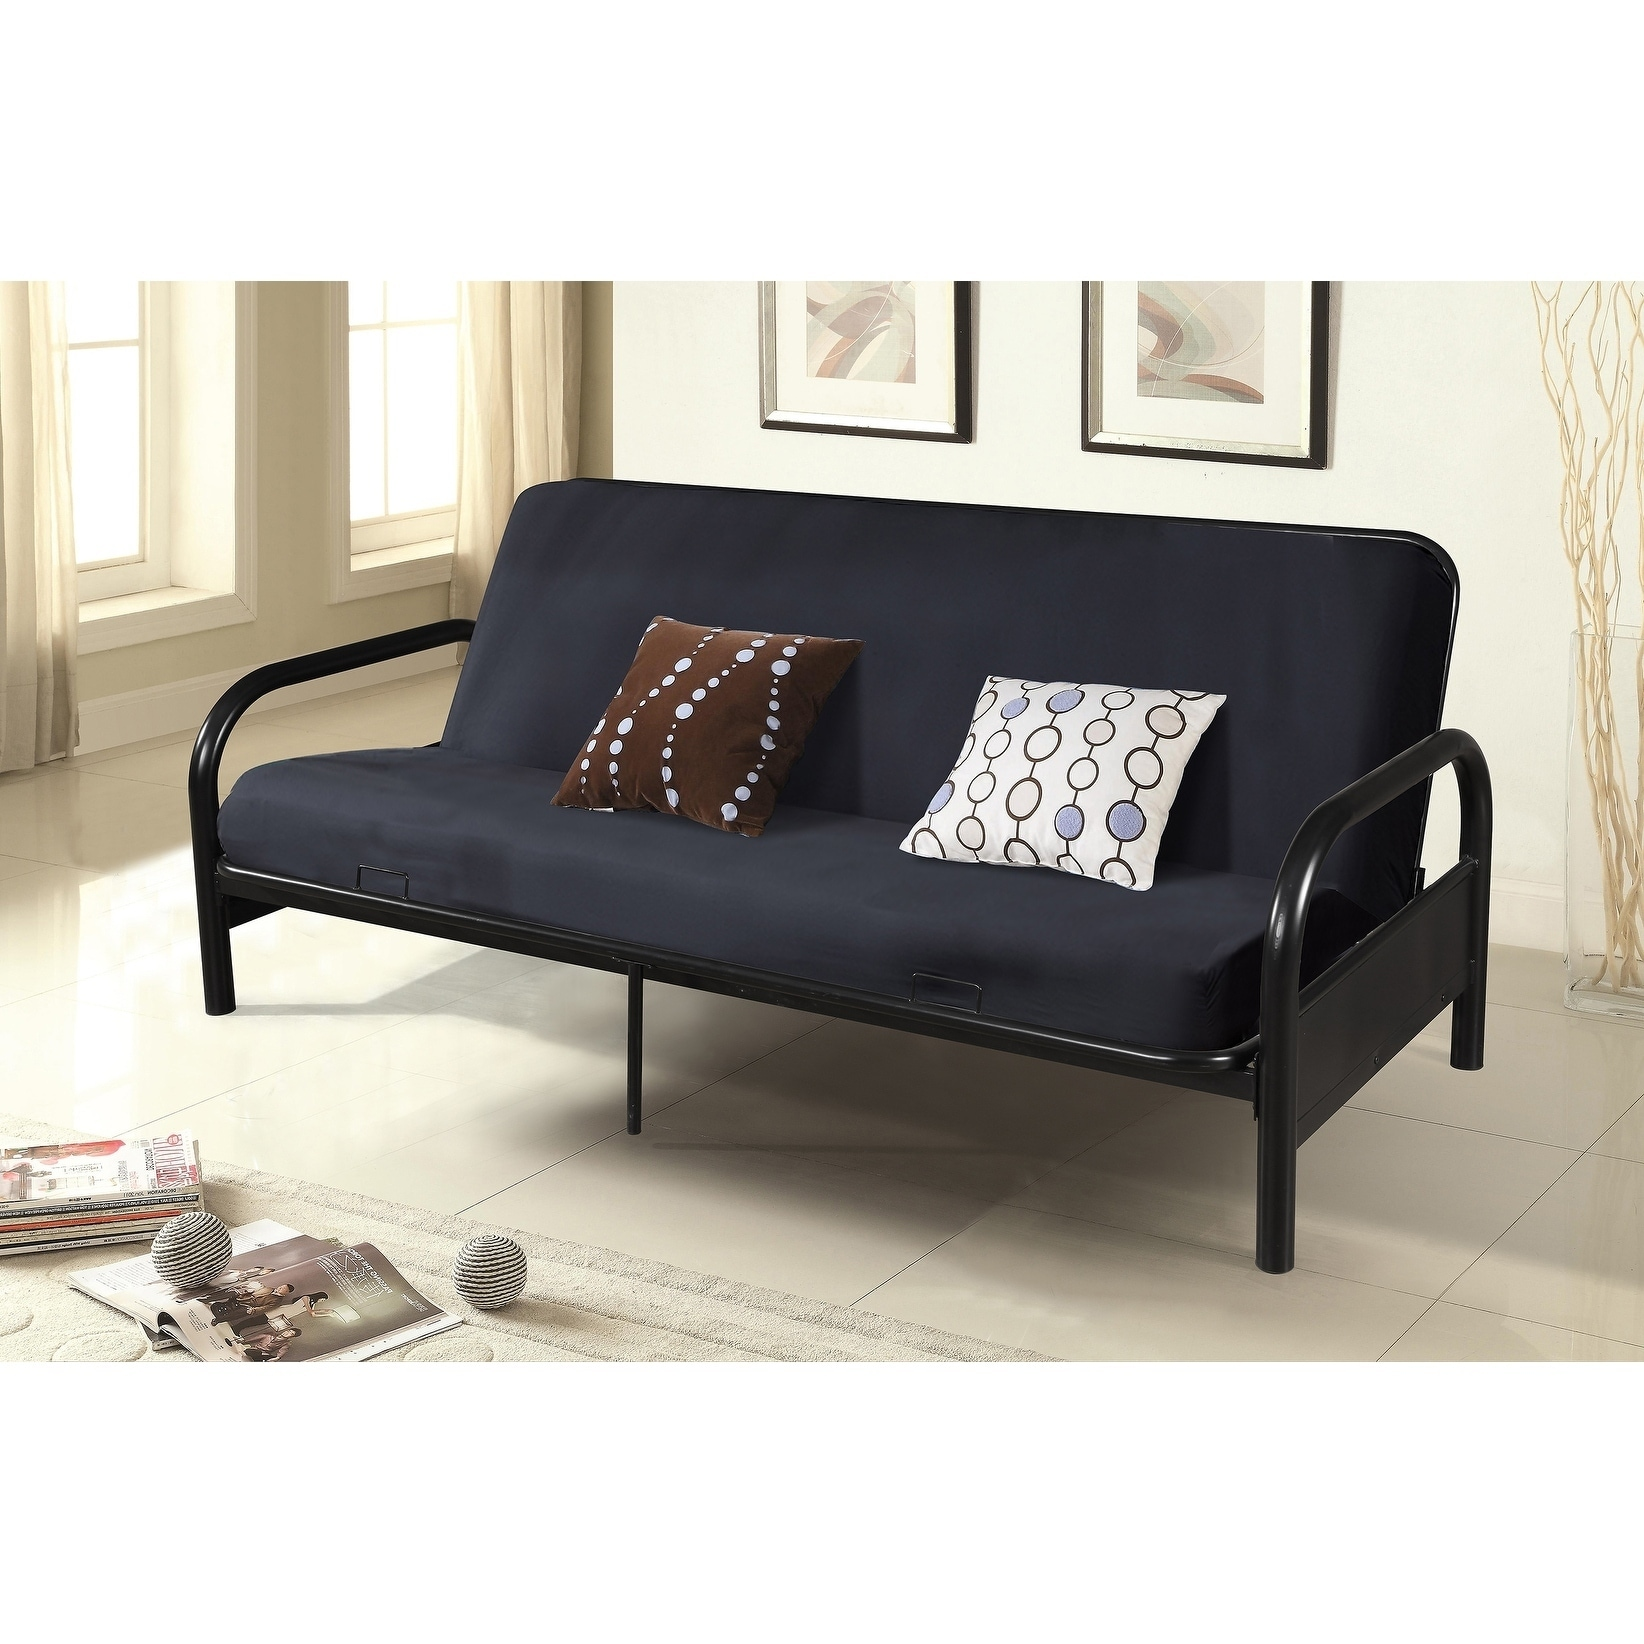 Black Bi Fold Full Size Futon With